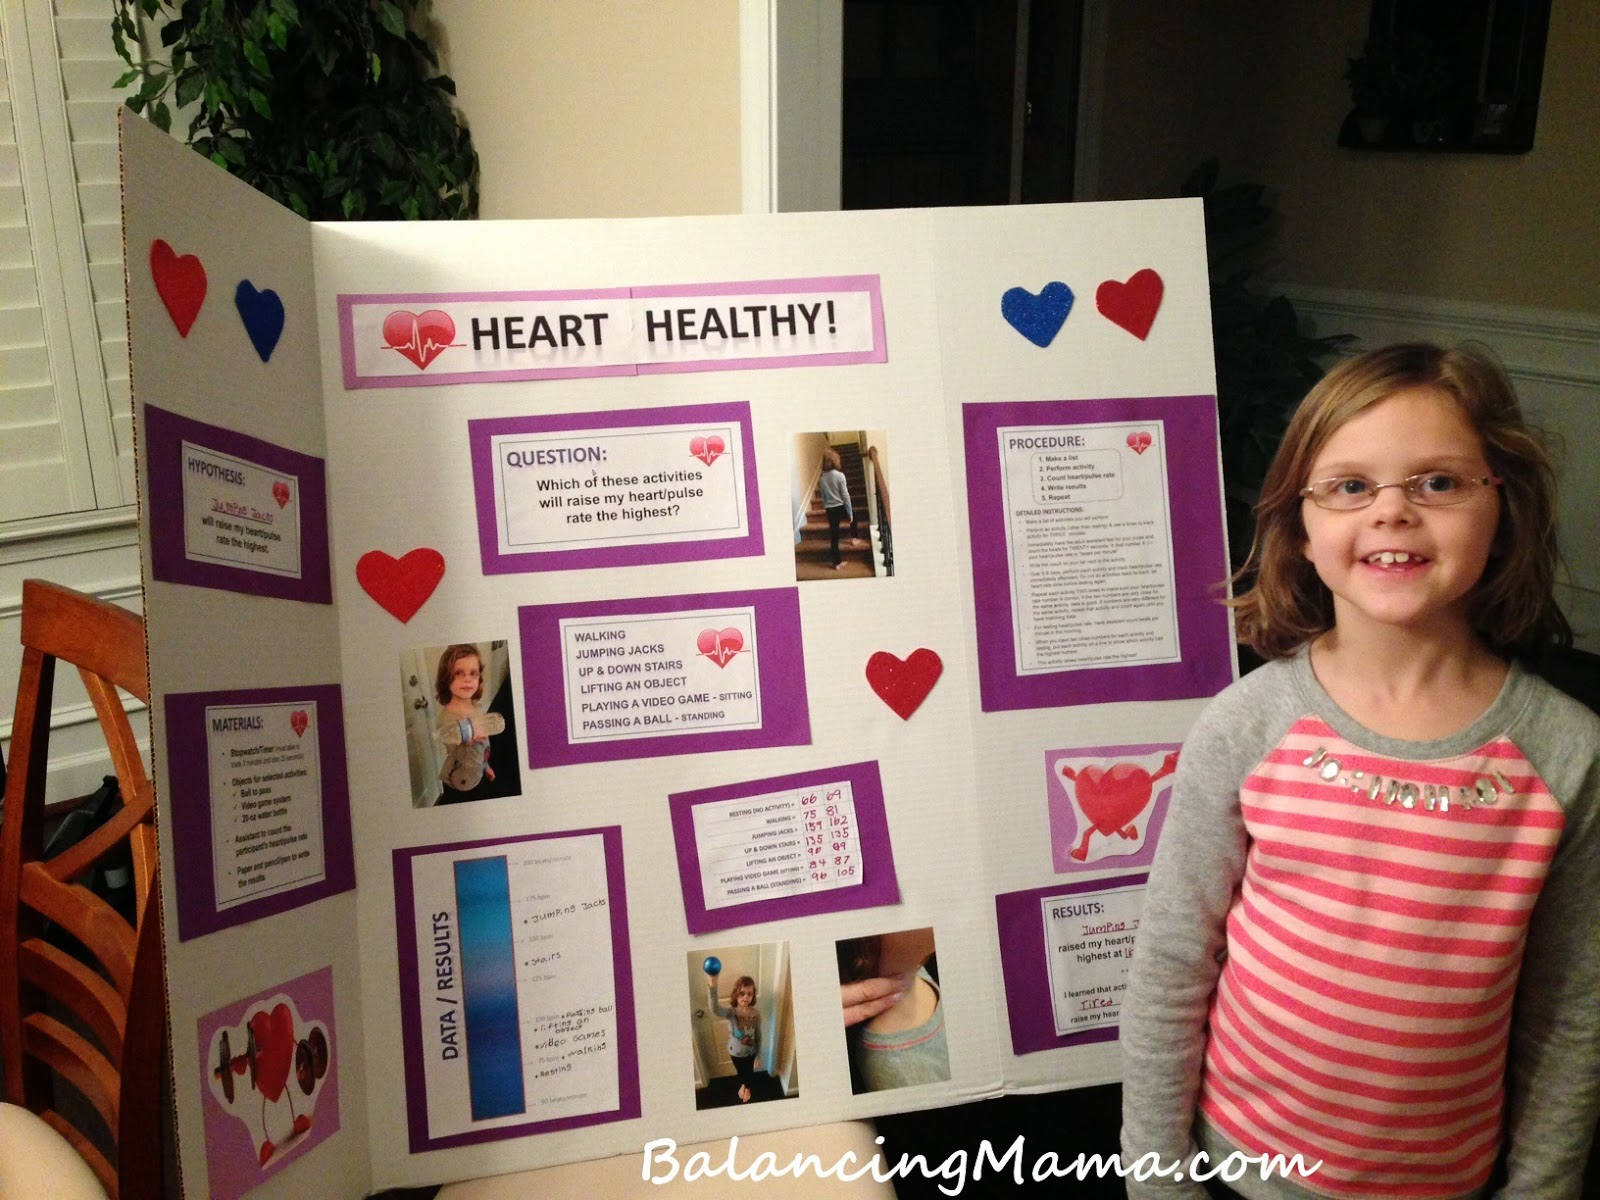 ... BalancingMama: Exercise and heart rate: A first grade science project